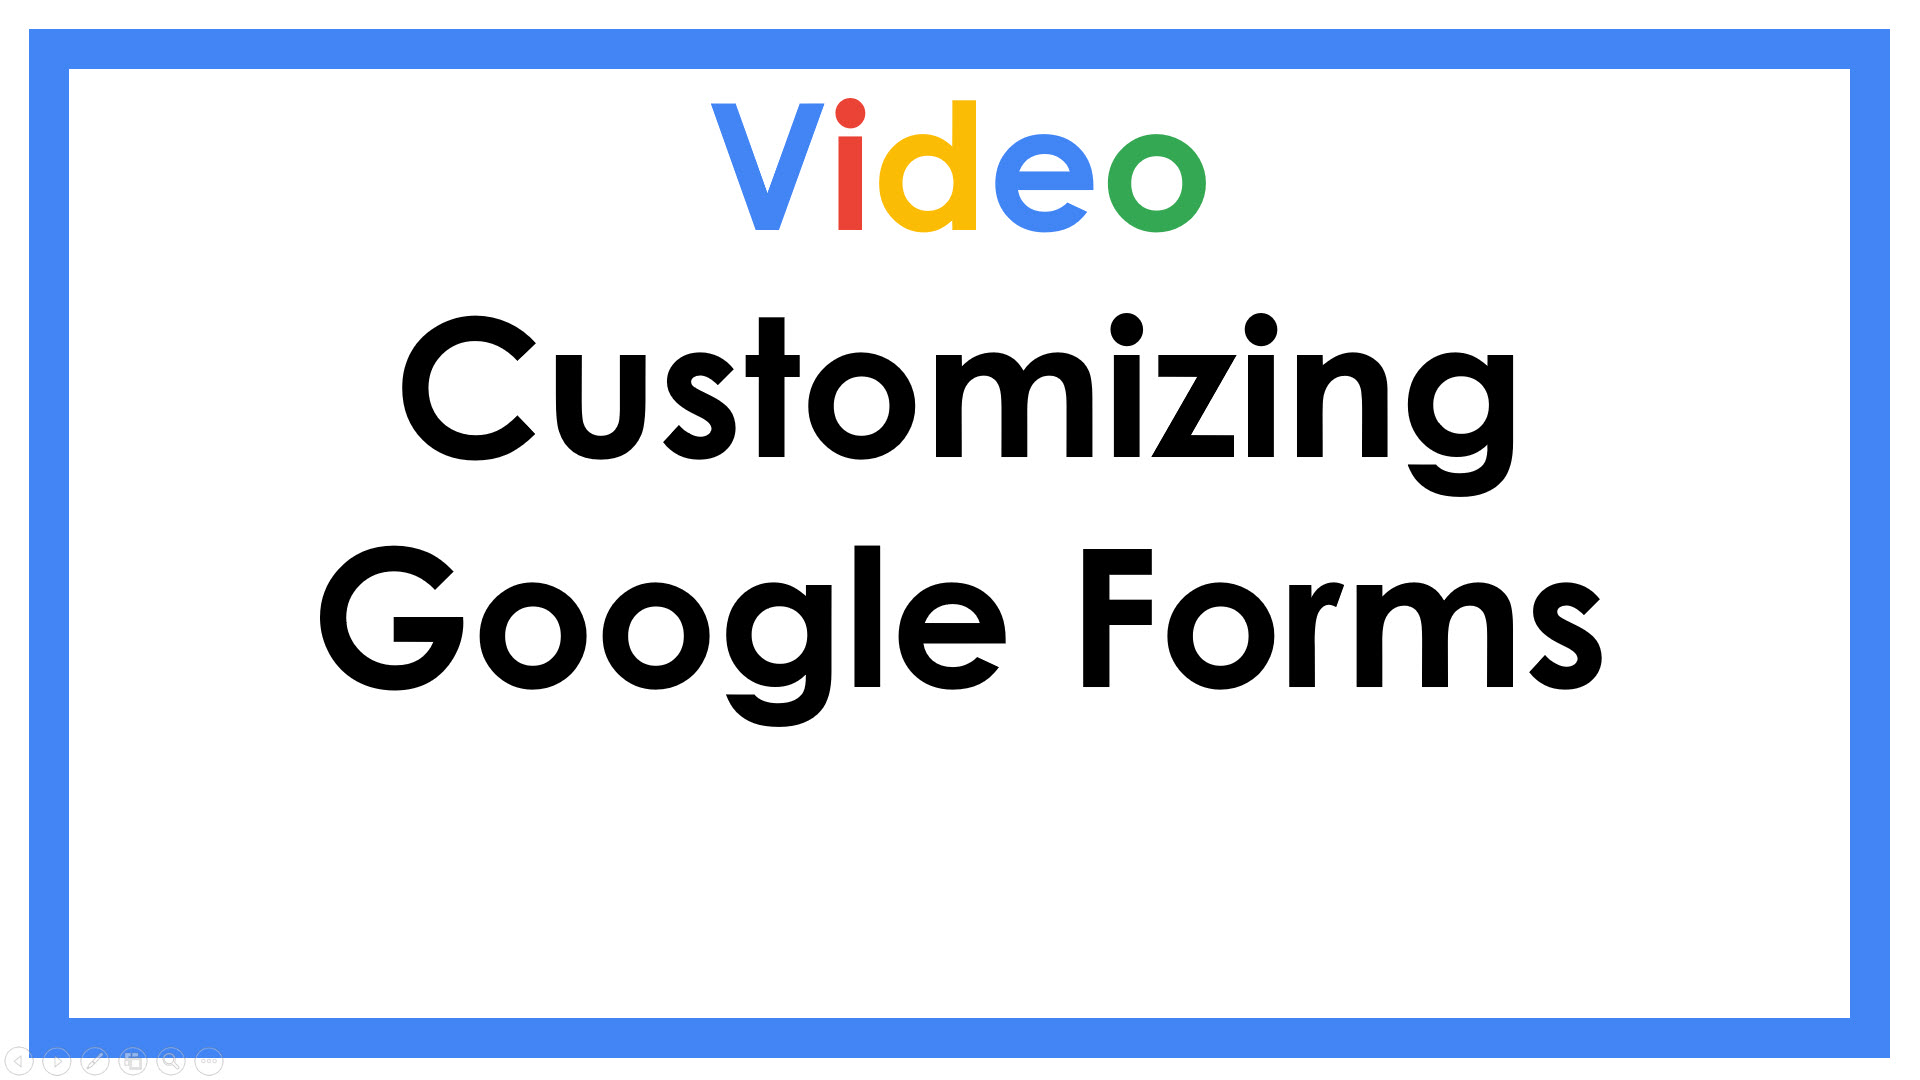 Customizing Google Forms